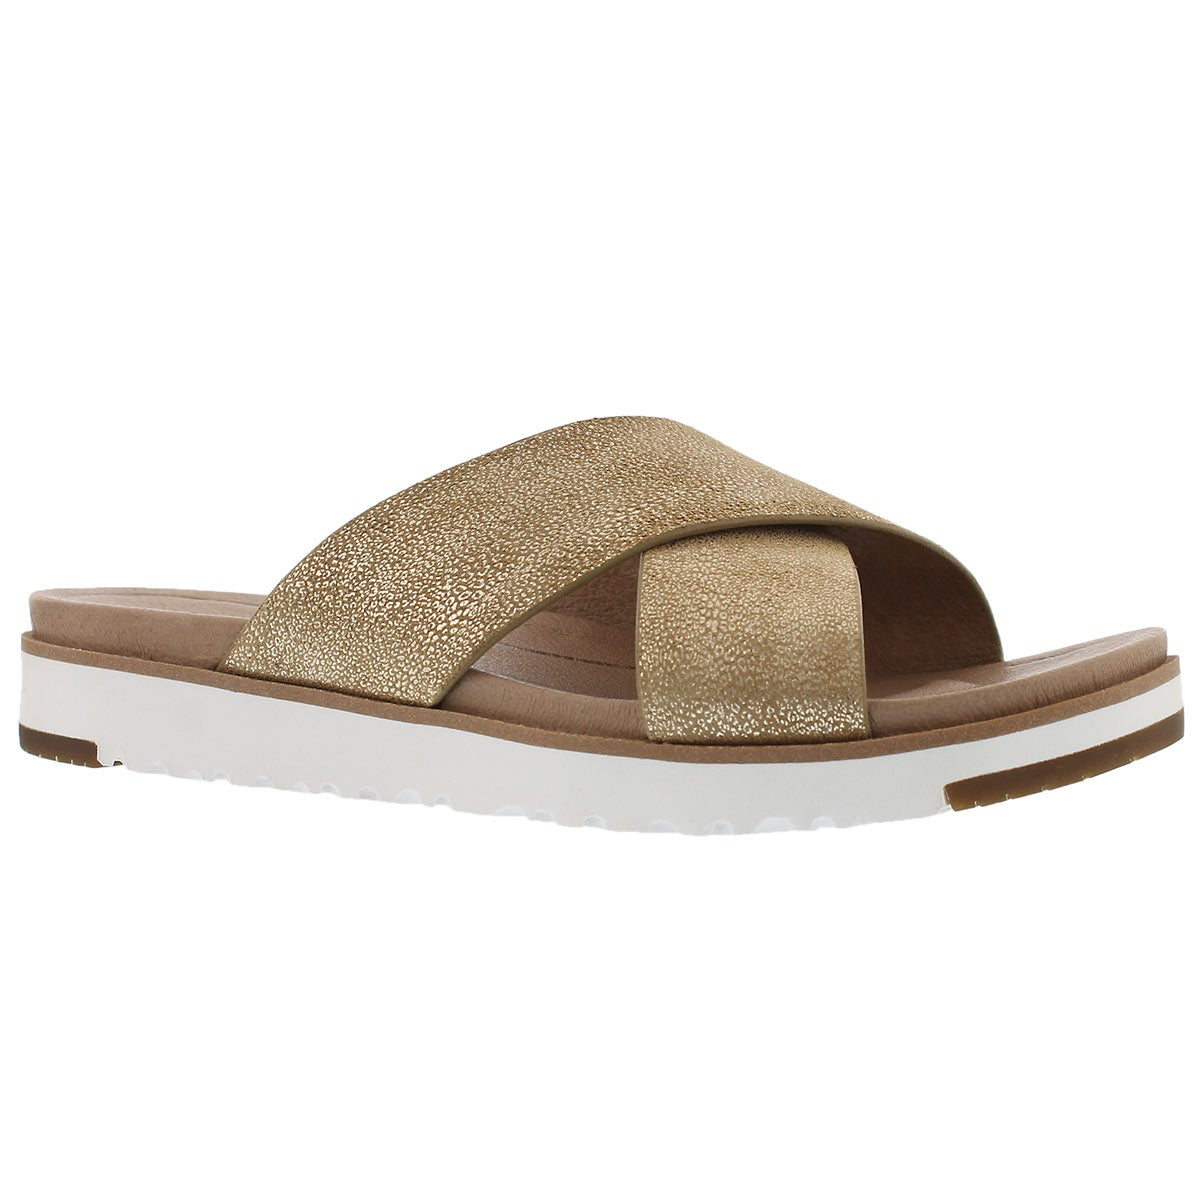 Women's KARI METALLIC gold casual slide sandals